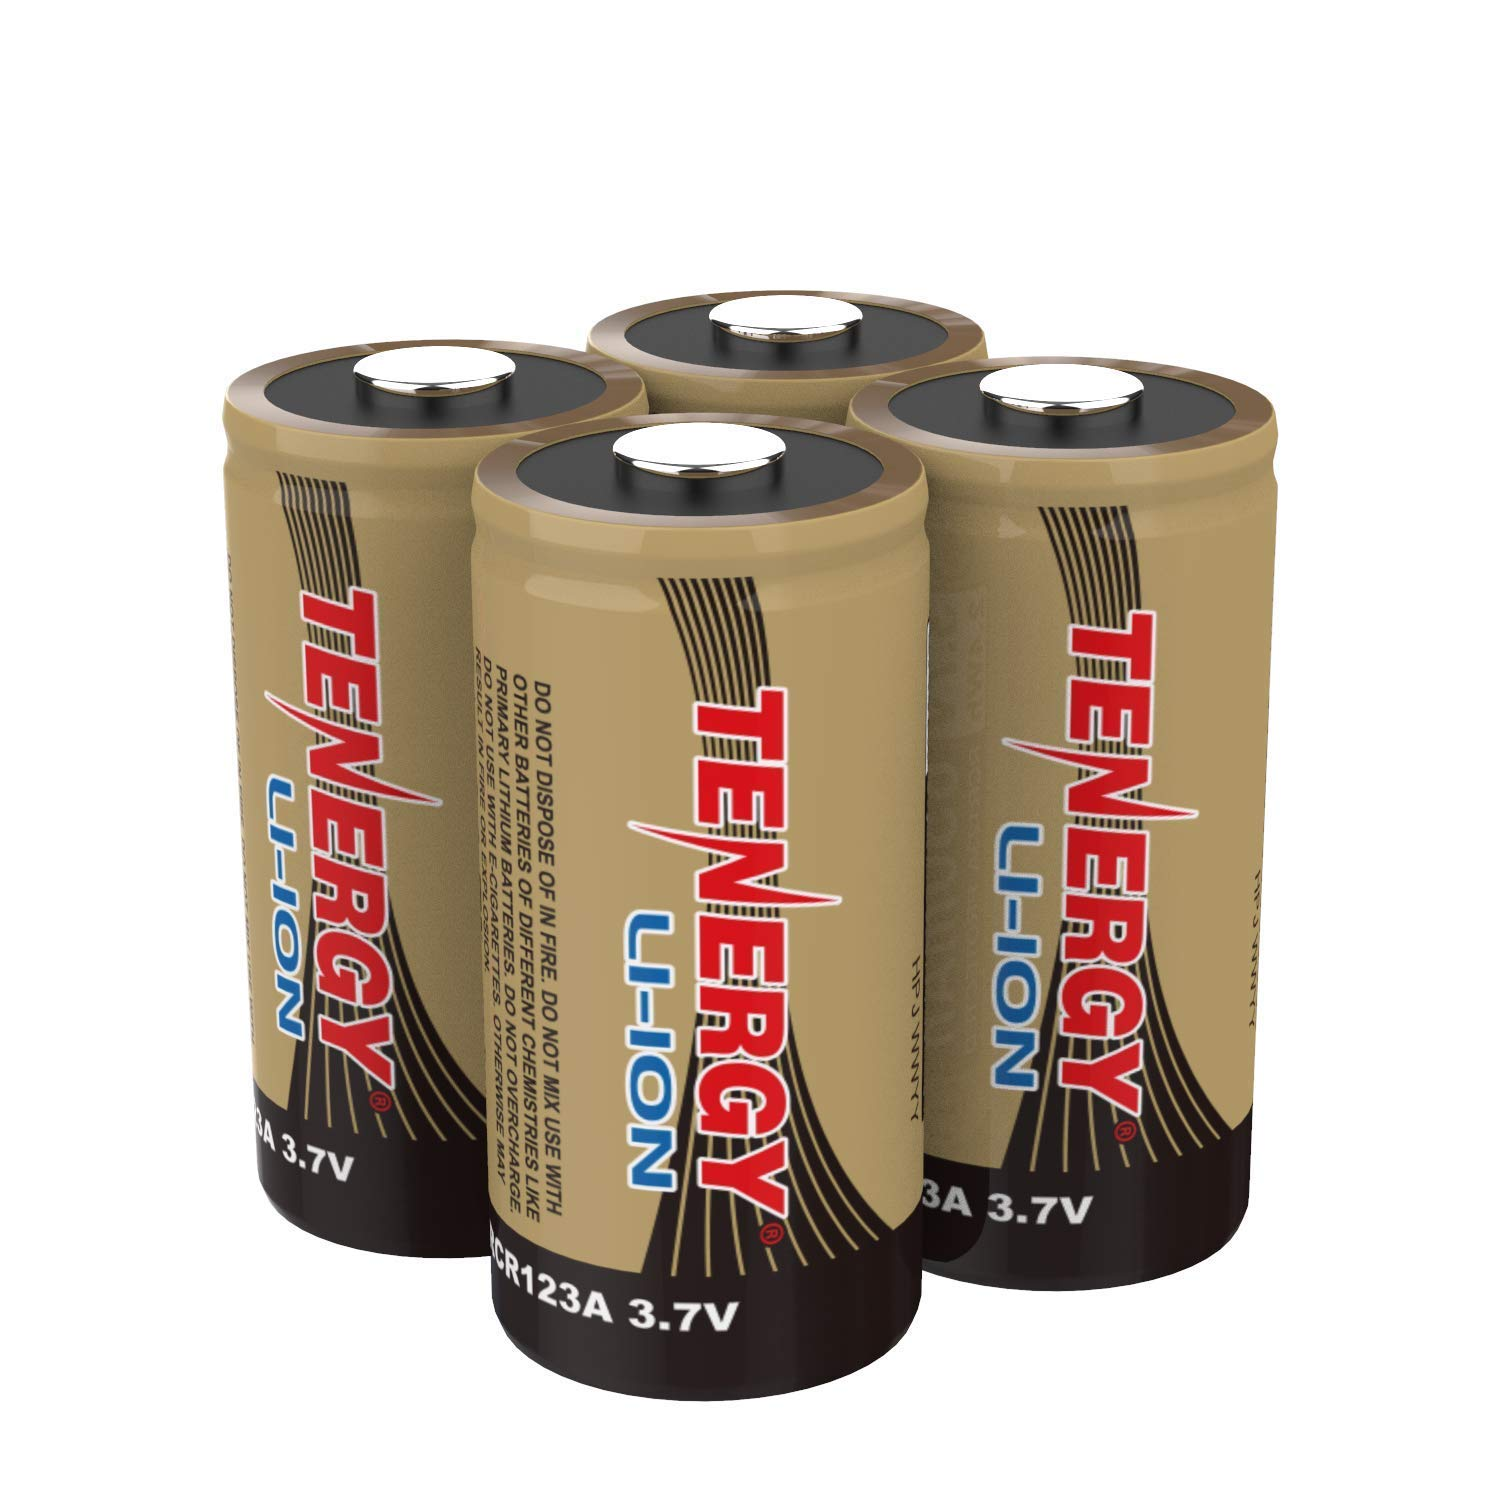 Arlo Certified: Tenergy 3.7V Li-ion Rechargeable Battery for Arlo Security Cameras